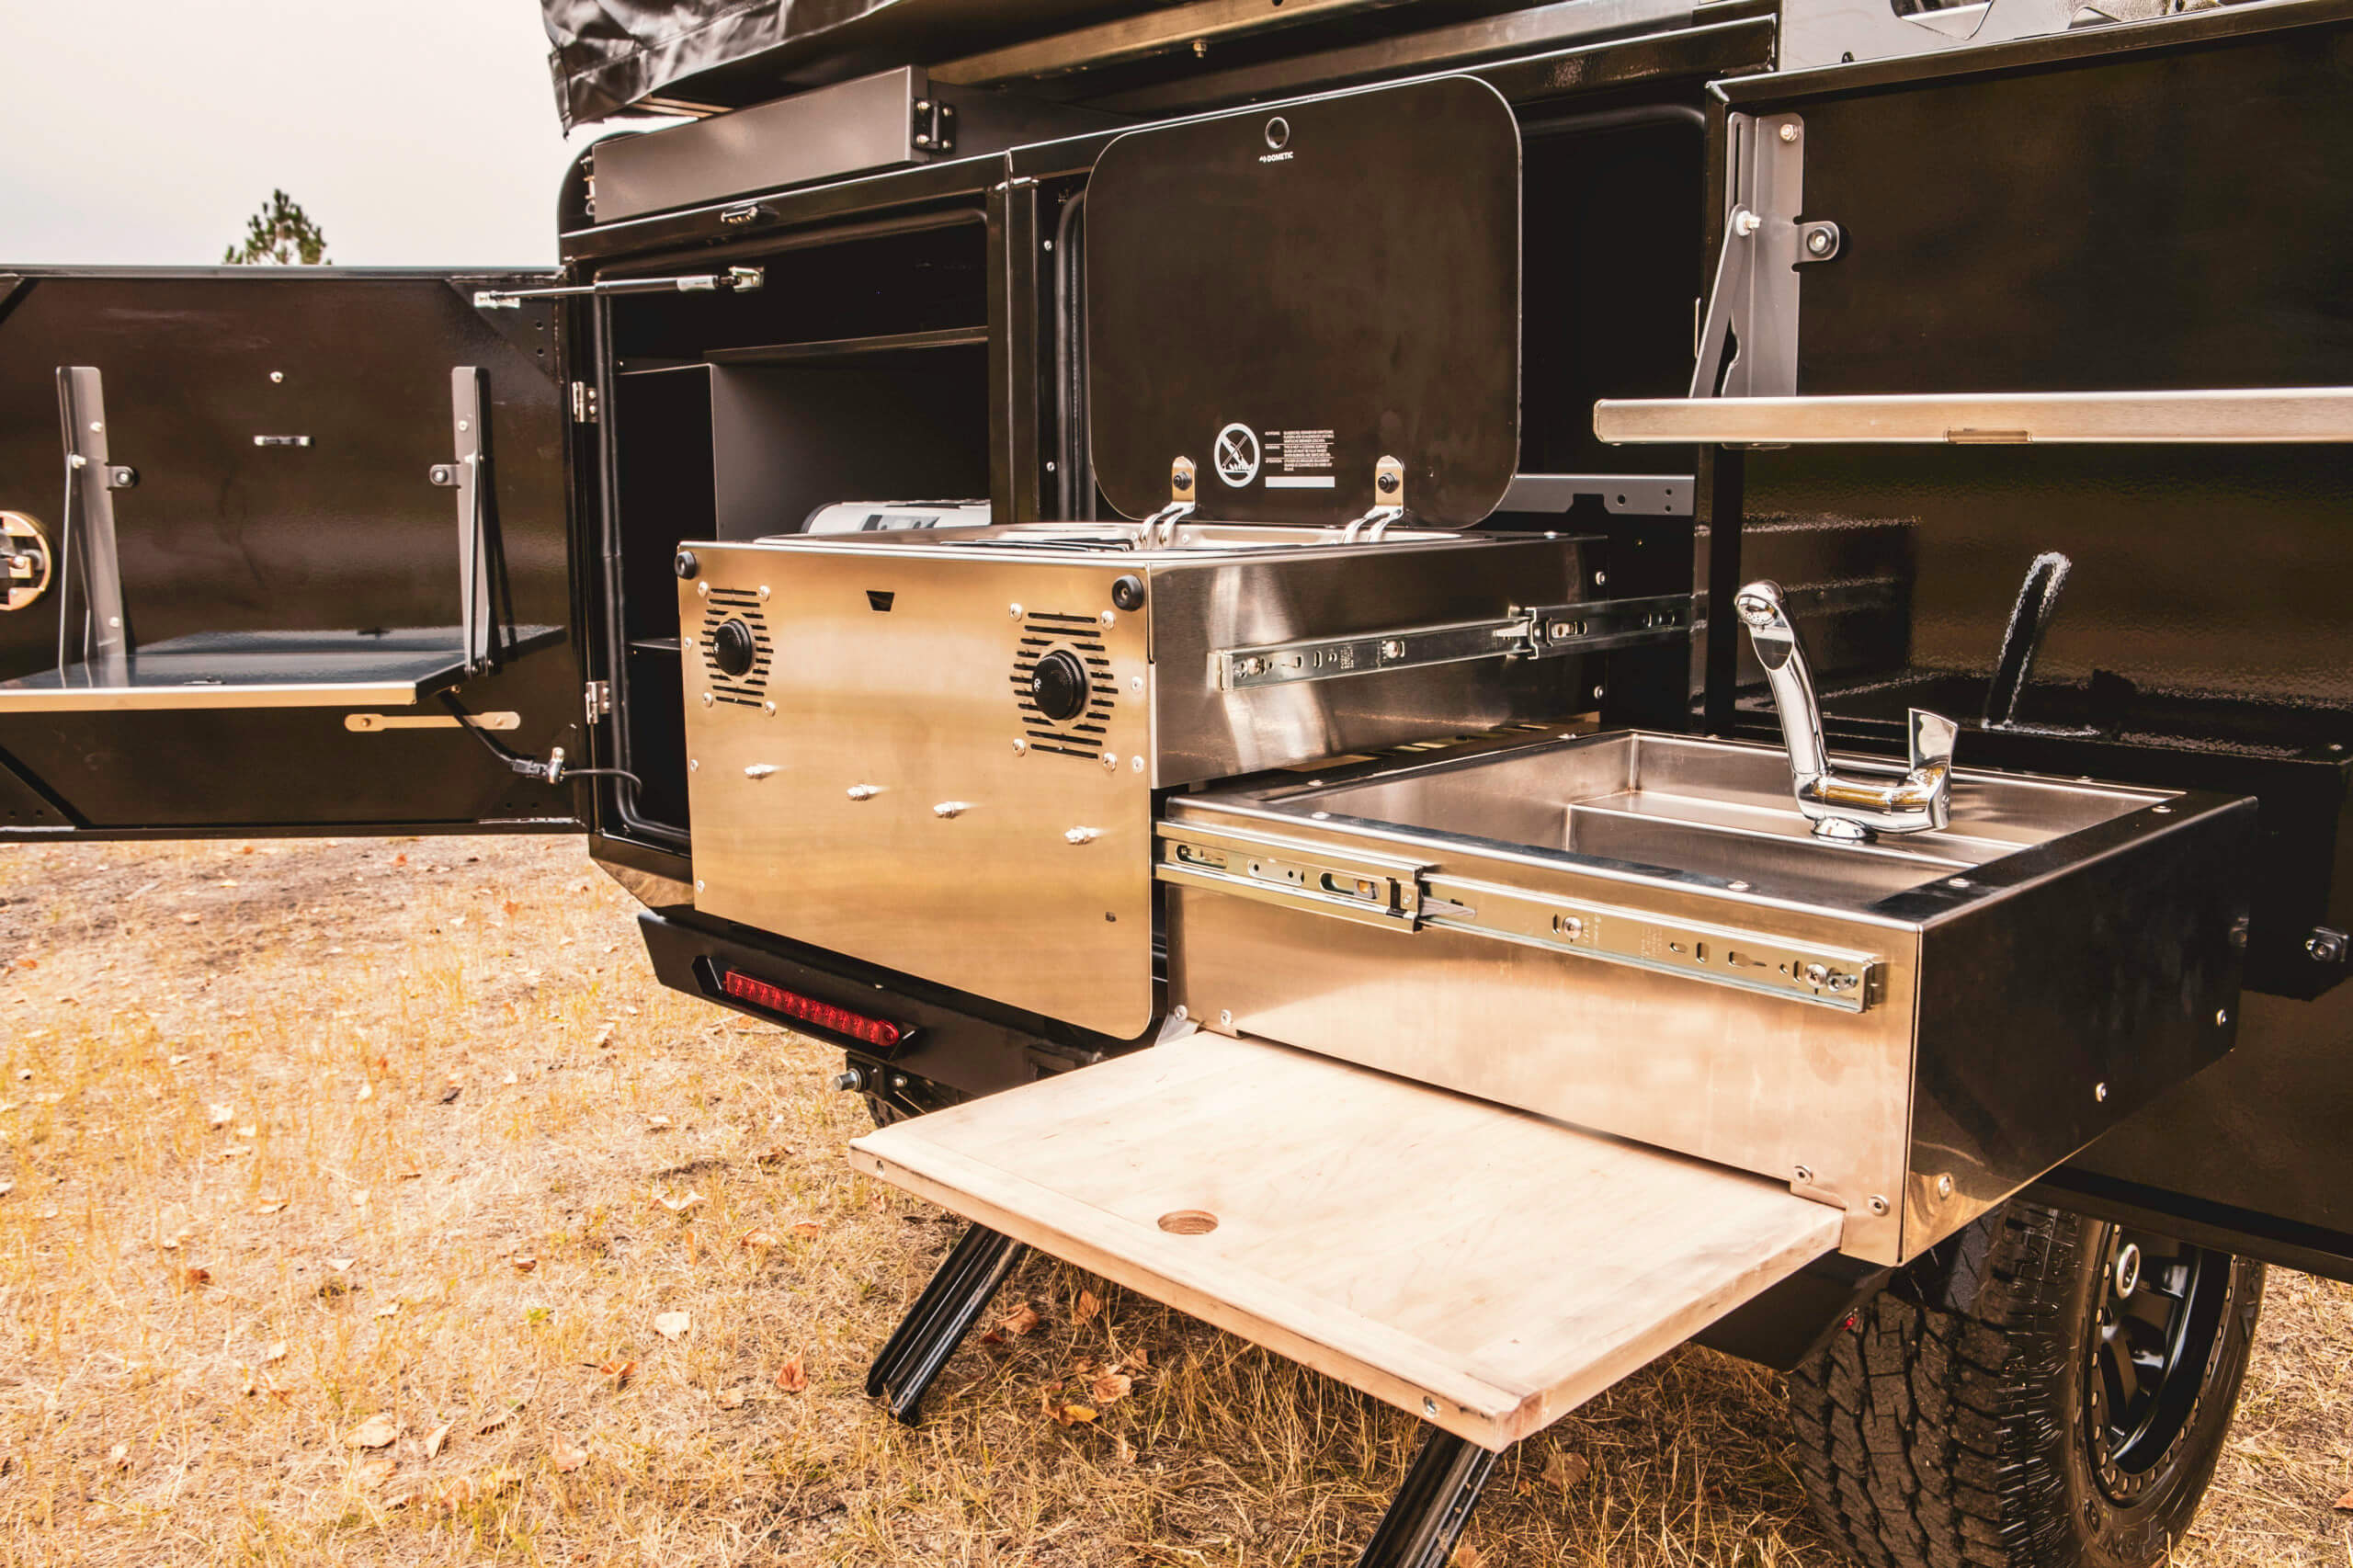 kitchen in overlanding trailer